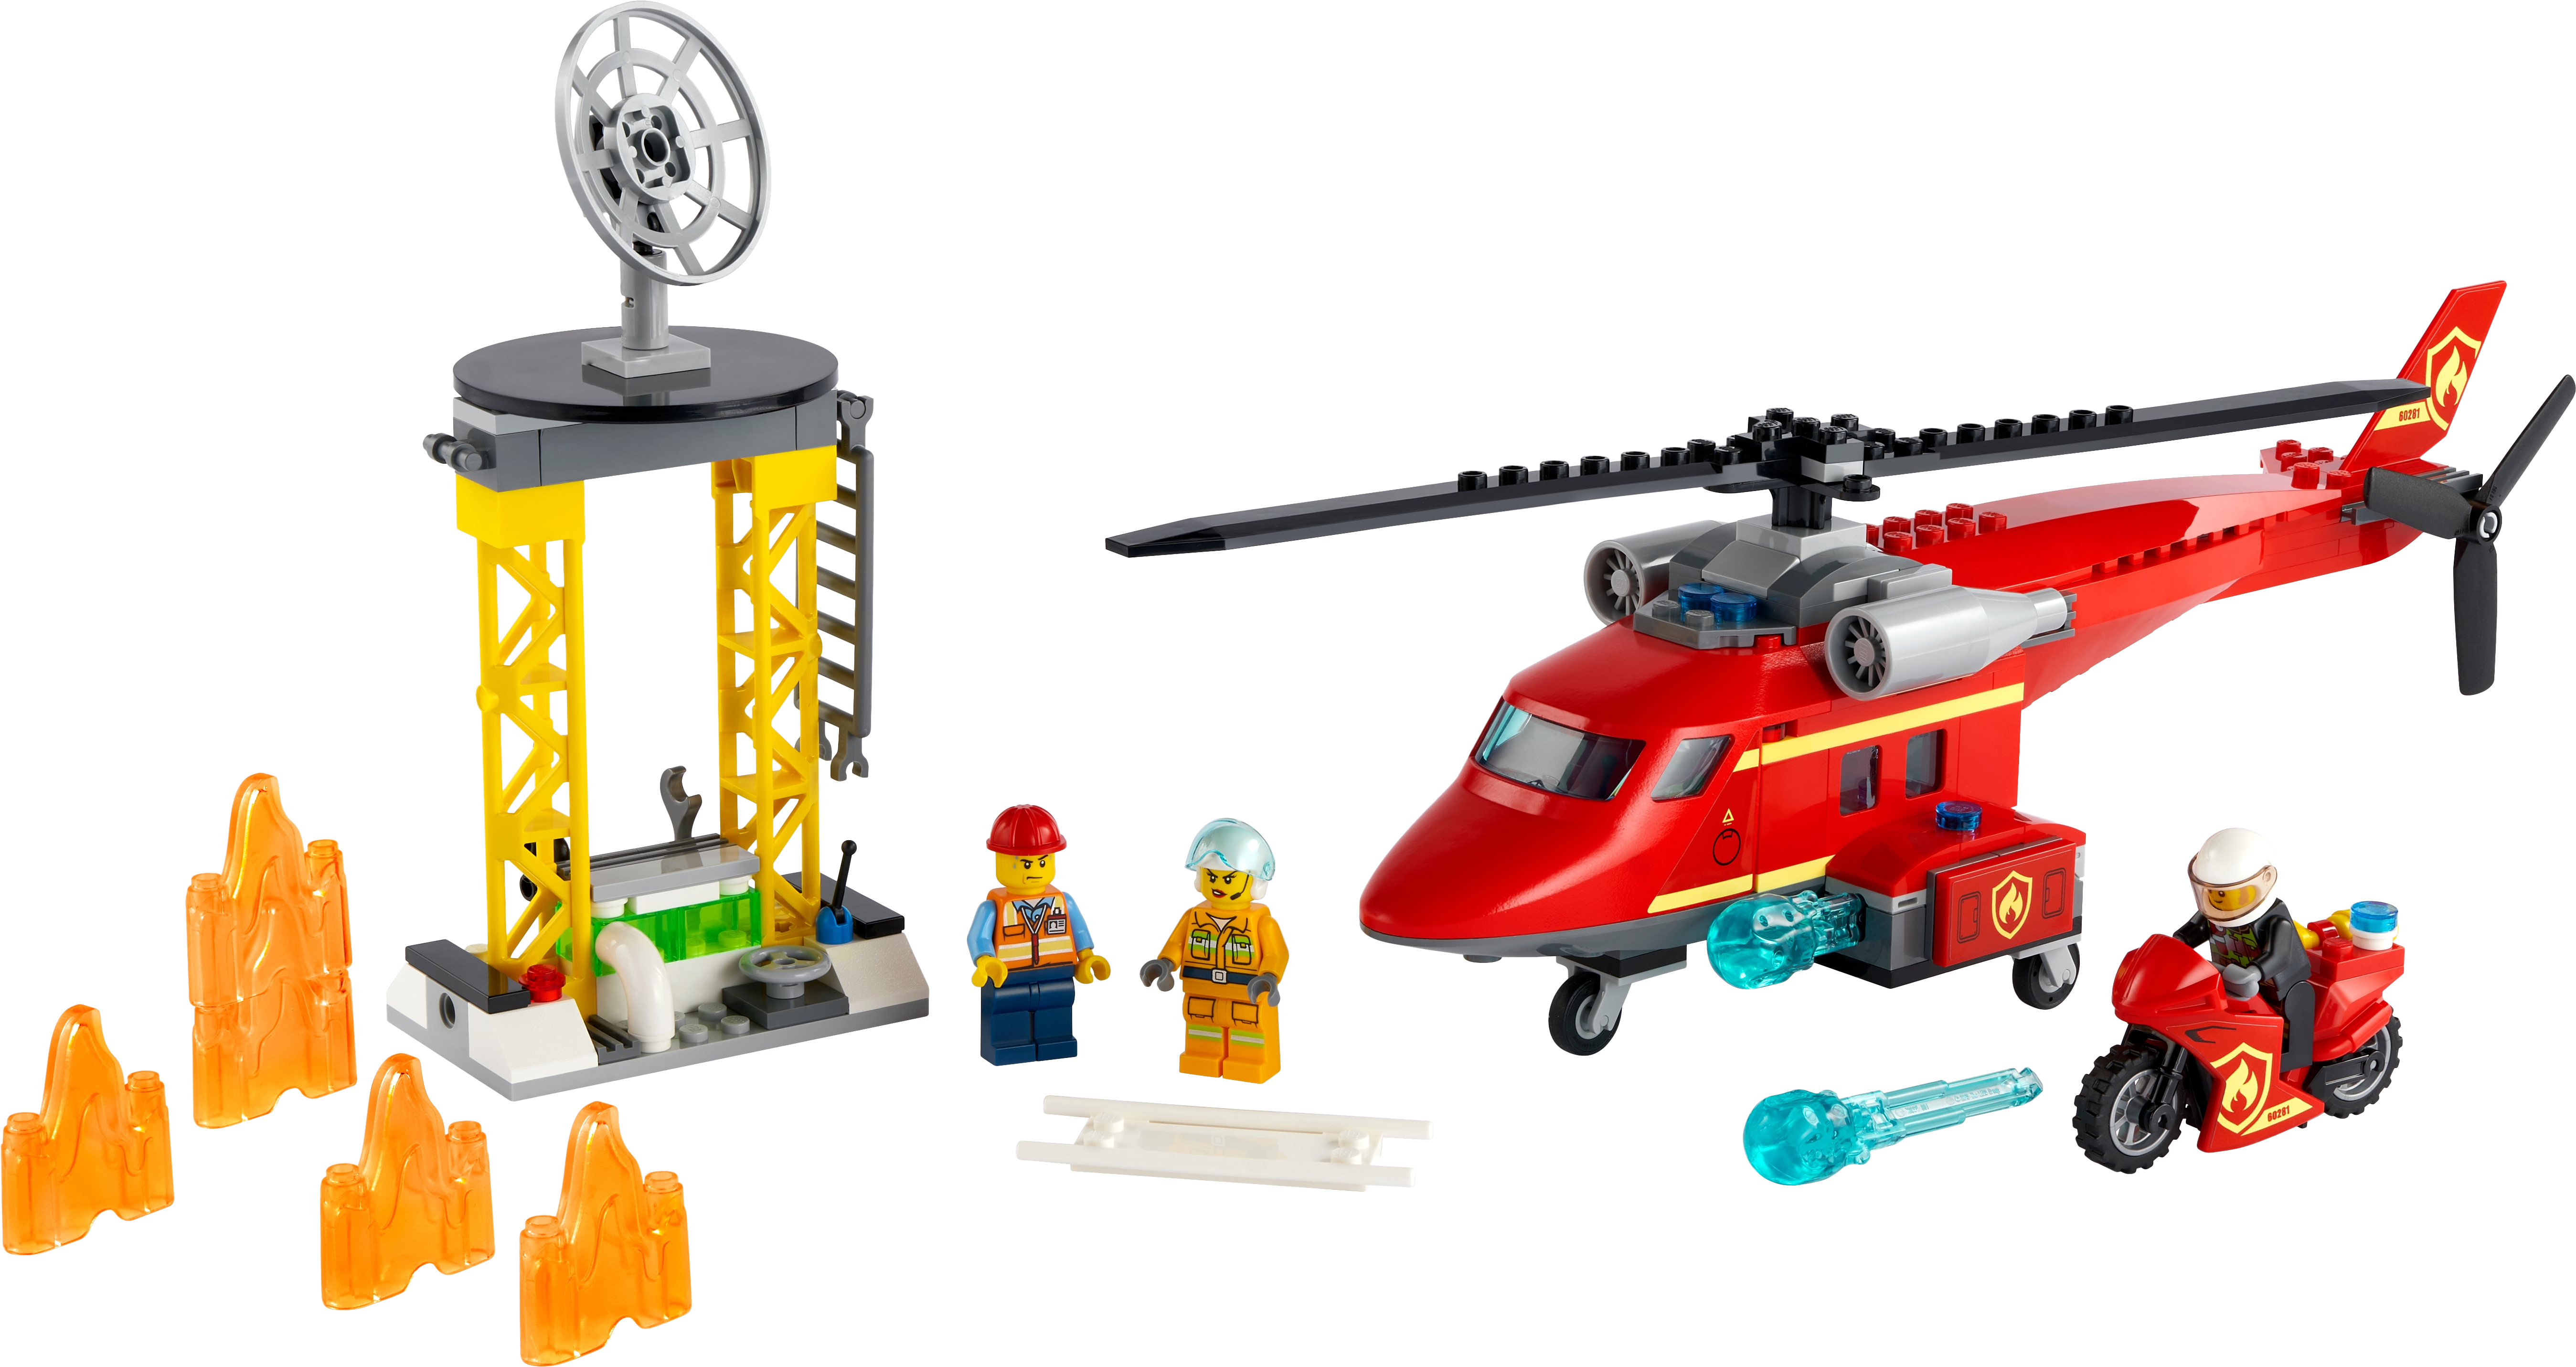 Fire Rescue Helicopter